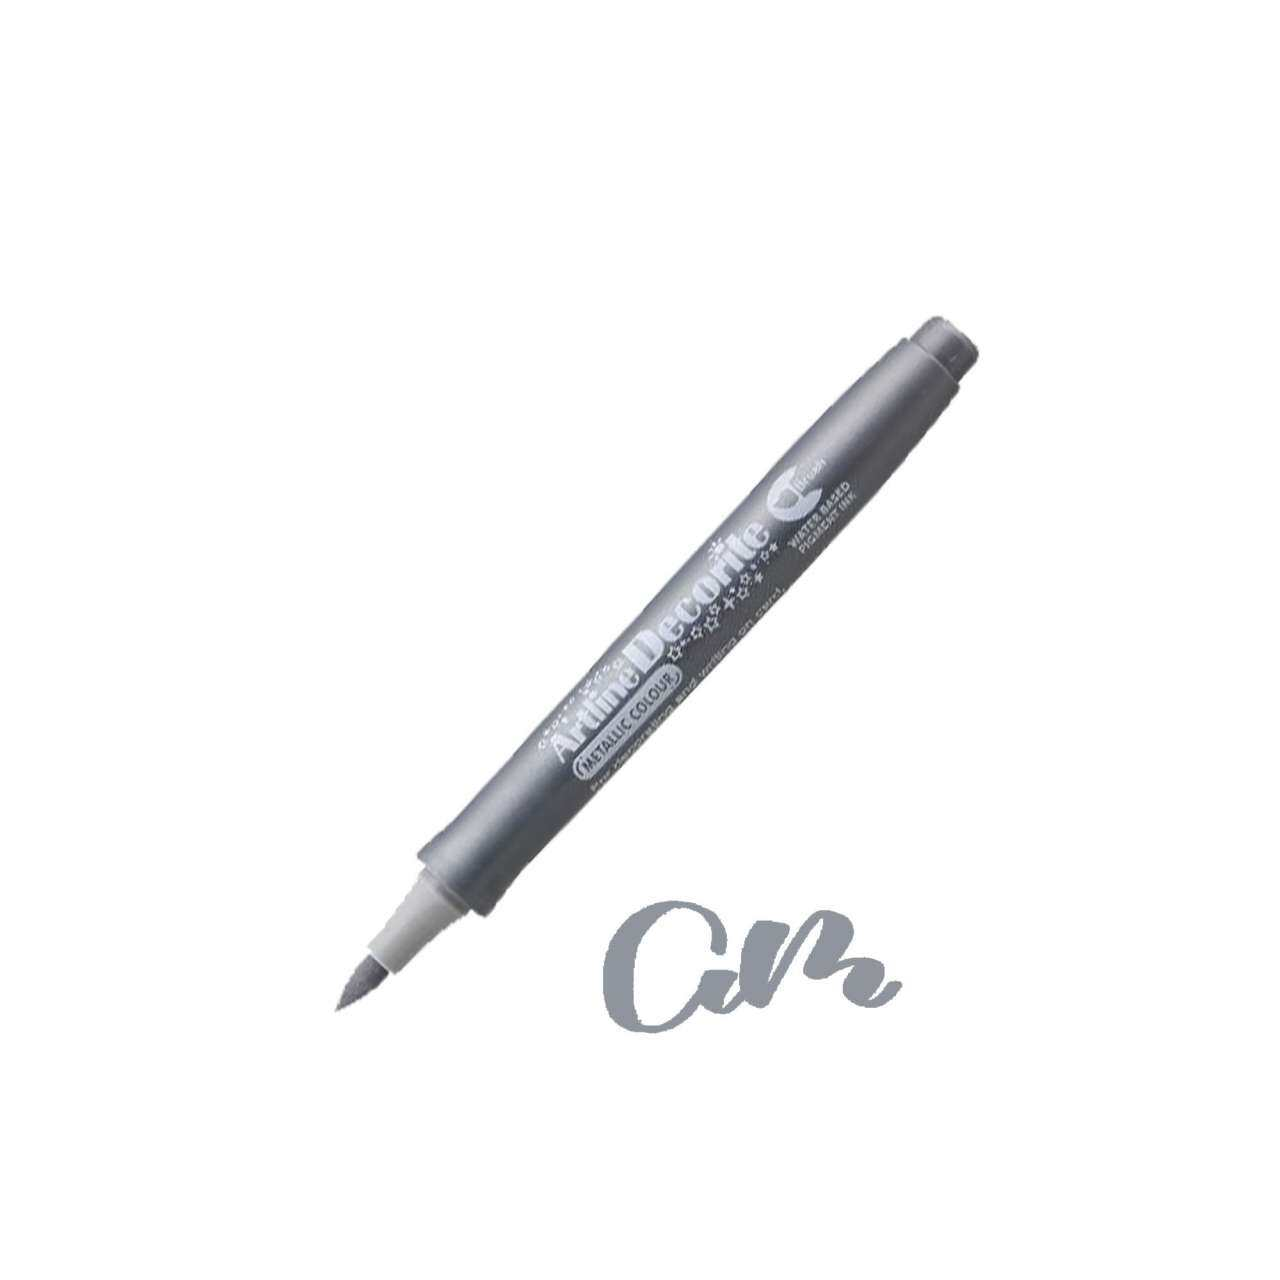 Artline Decorite Brush (EDF-F)  (EDFM-F) Silver